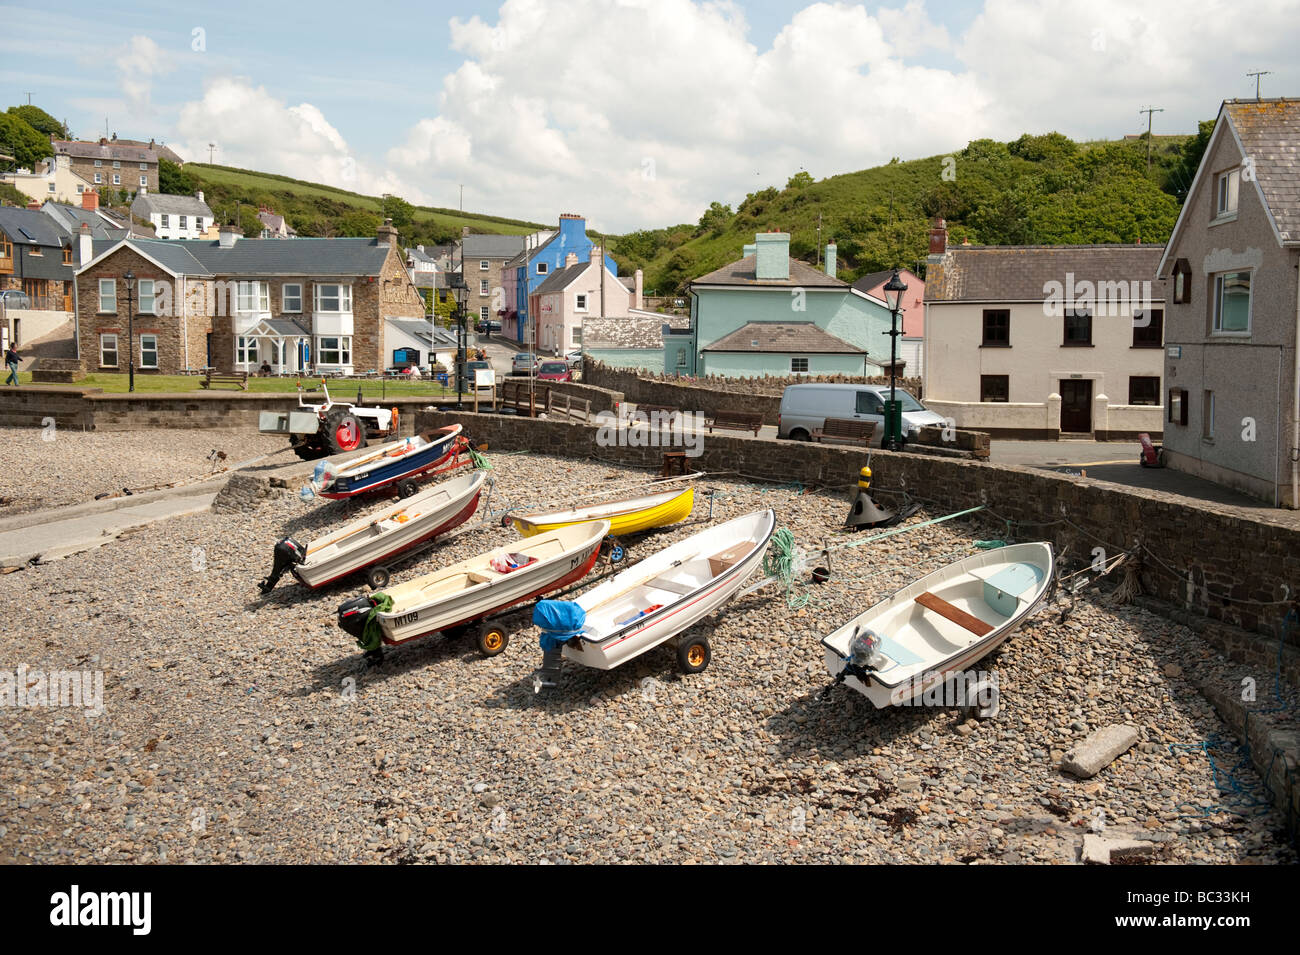 boats on the beach on a summer afternoon Little Haven Pembrokeshire Coast National Park south west wales UK - Stock Image